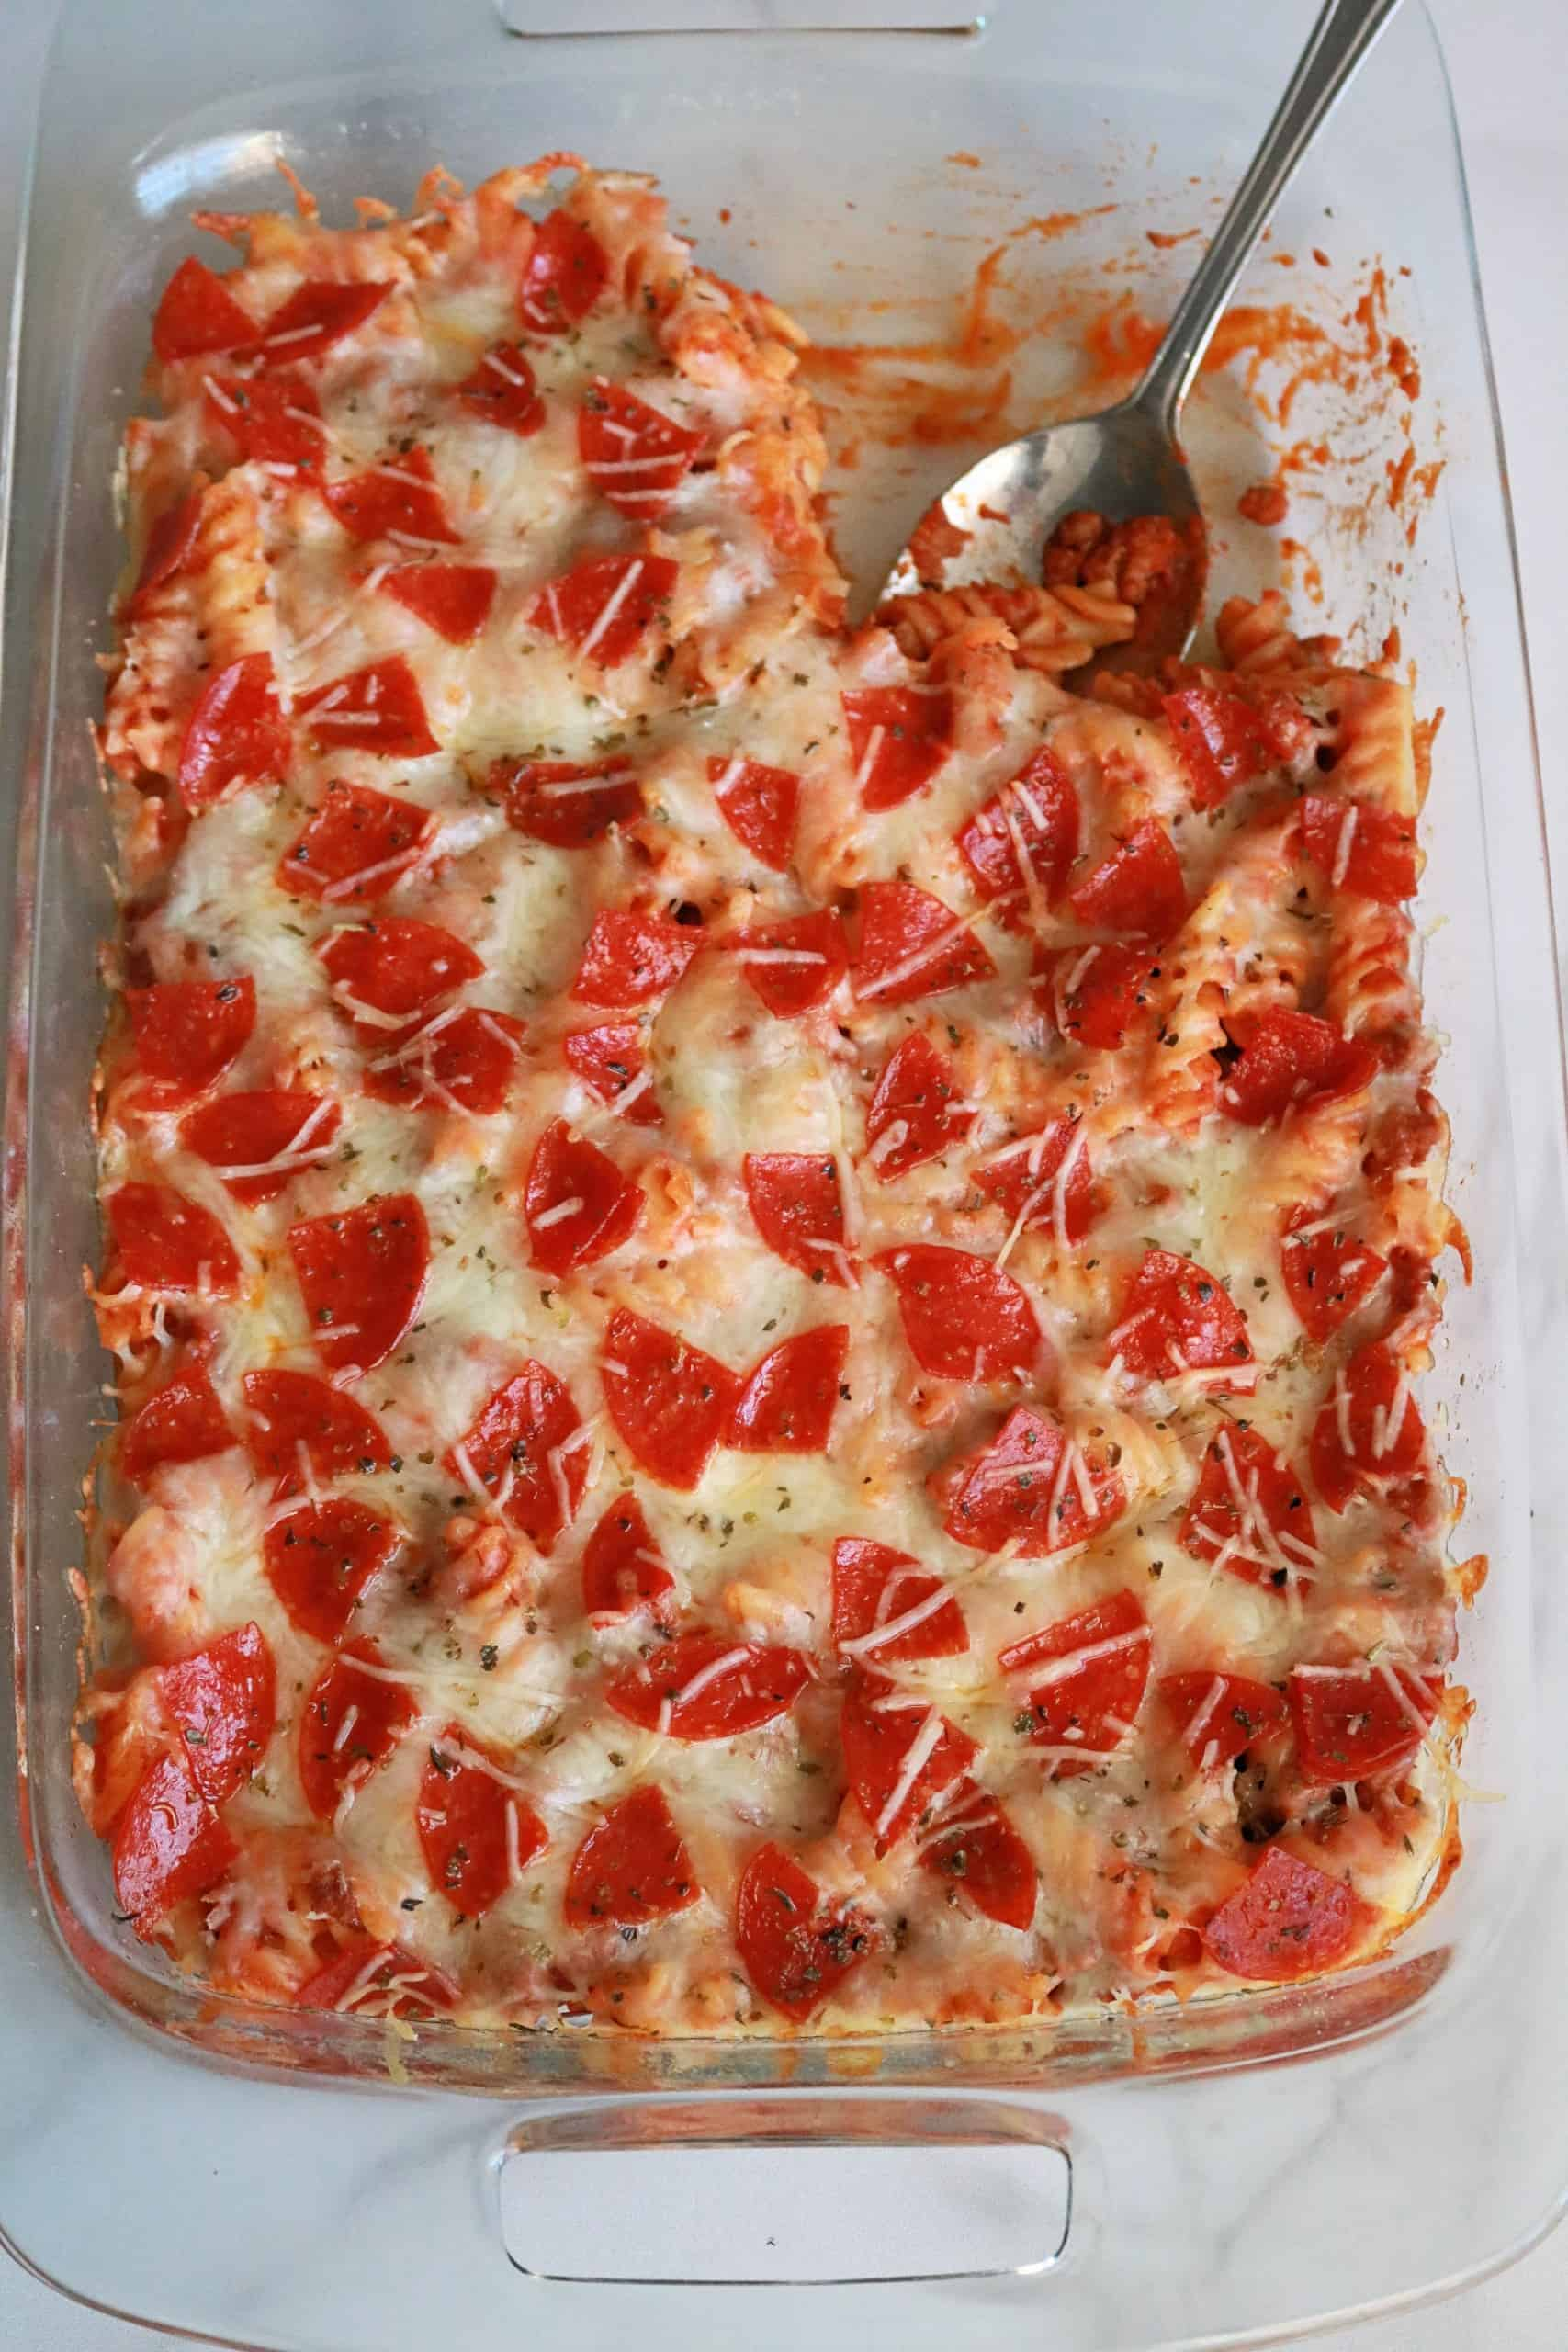 Try my delicious pepperoni pizza pasta bake for an easy weeknight dinner for the family! This pizza casserole is made with pepperoni, sausage, pasta, marinara sauce, herbs, and gooey cheese, and takes less than 30 minutes to make. It's also freezer-friendly! #pizzacasserole #casserole #easydinnerrecipe #pizzapasta